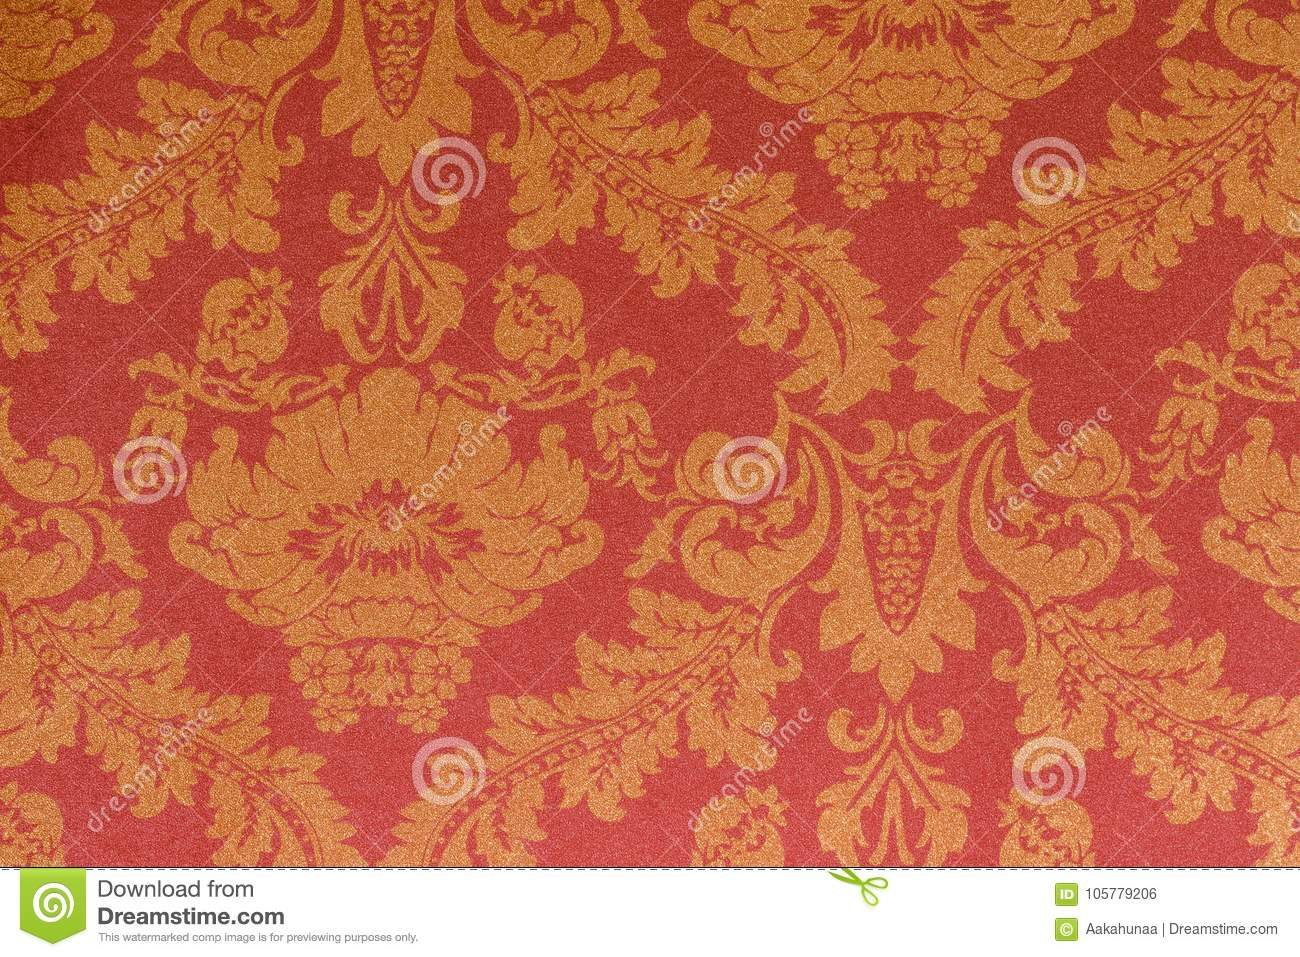 Wallpaper pattern